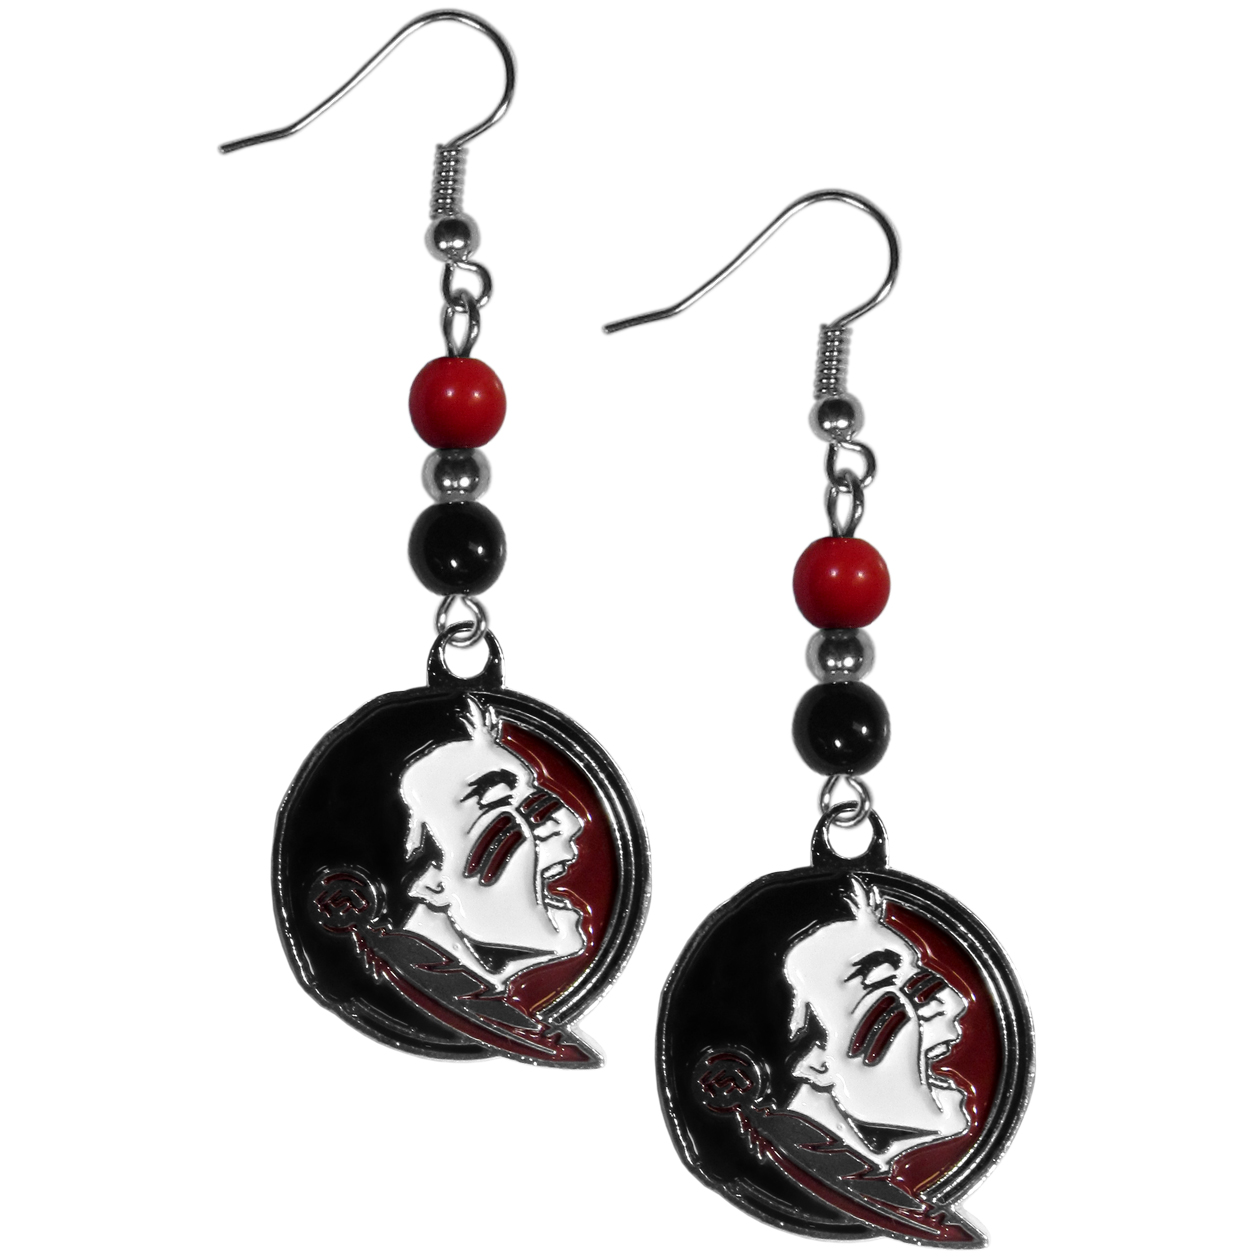 Florida St. Seminoles Fan Bead Dangle Earrings - Love your team, show it off with our Florida St. Seminoles bead dangle earrings! These super cute earrings hang approximately 2 inches and features 2 team colored beads and a high polish team charm. A must have for game day!